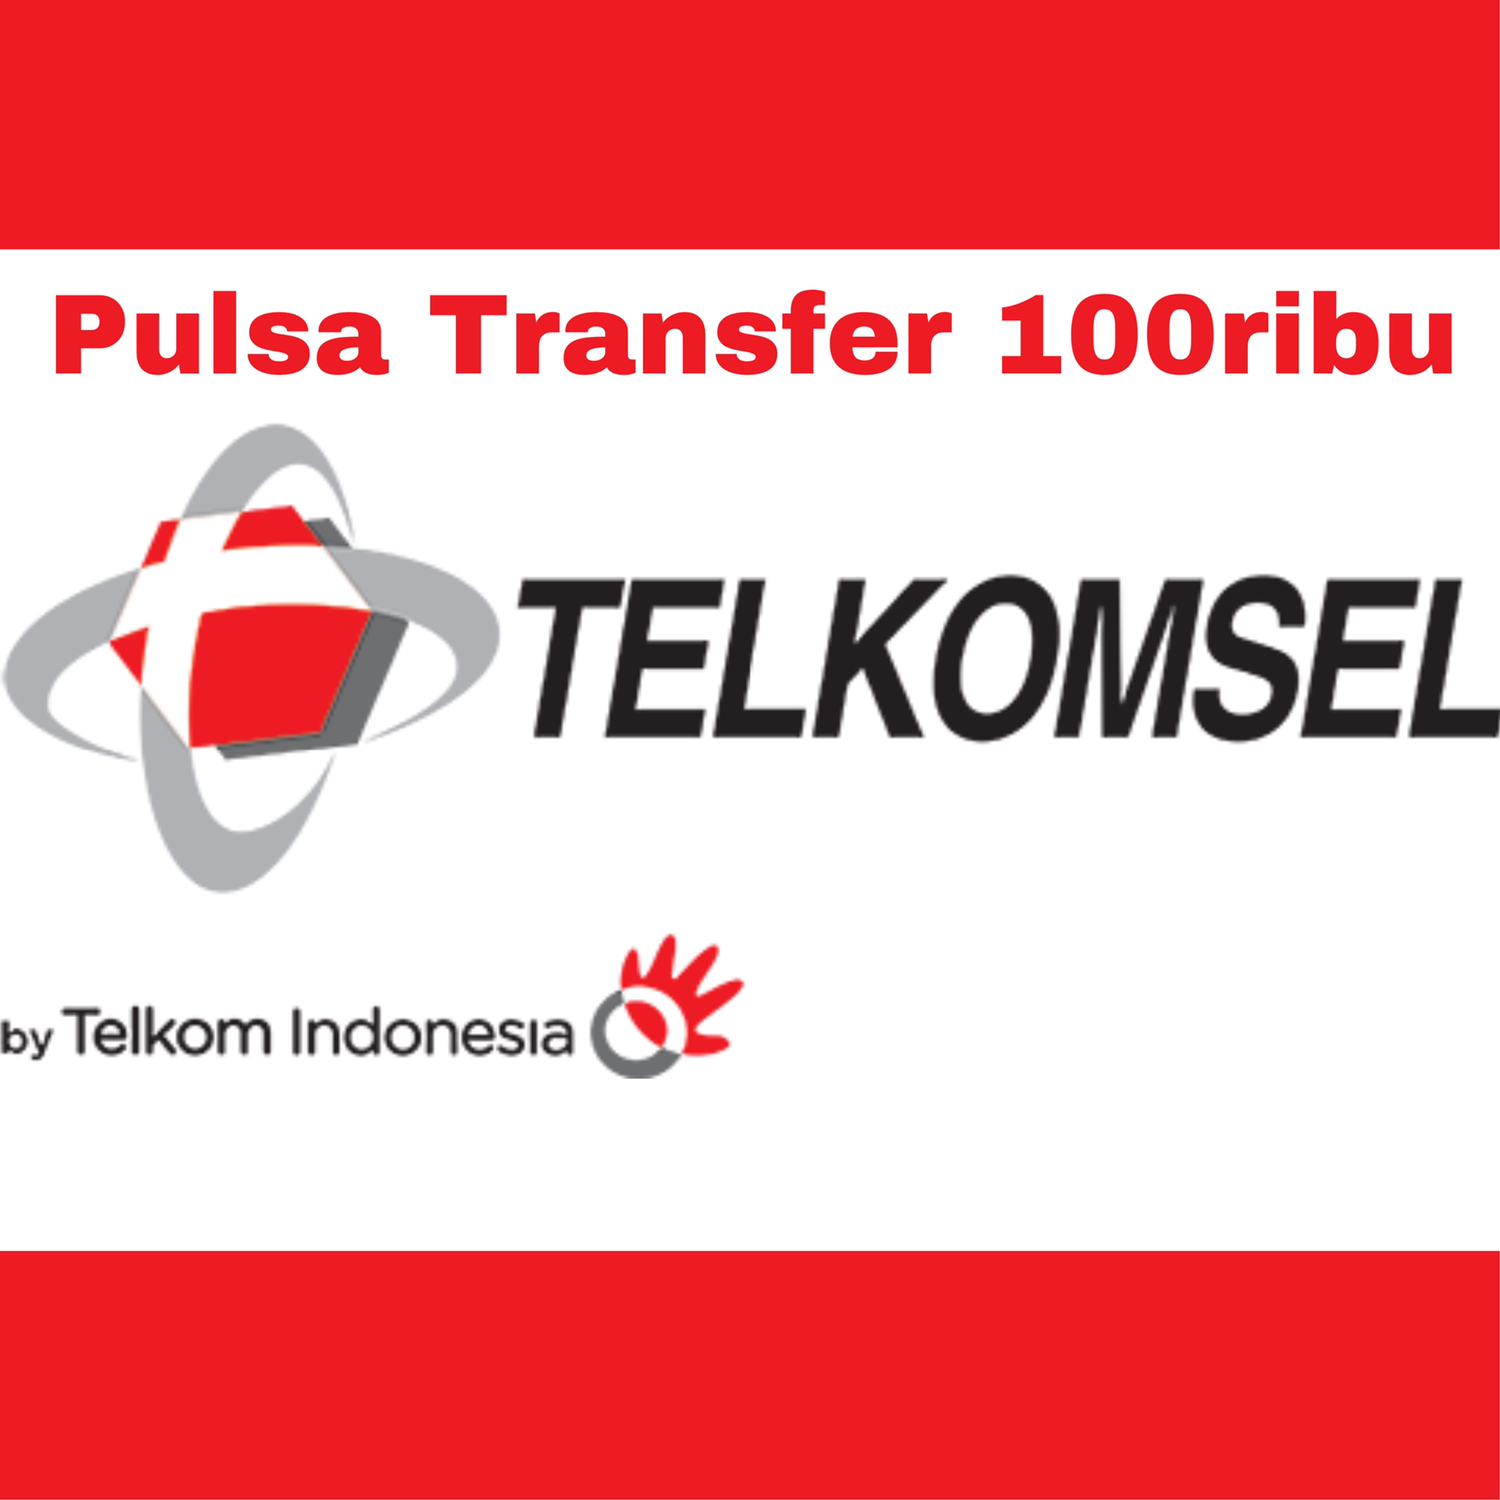 Pulsa Transfer Telkomsel 100.000